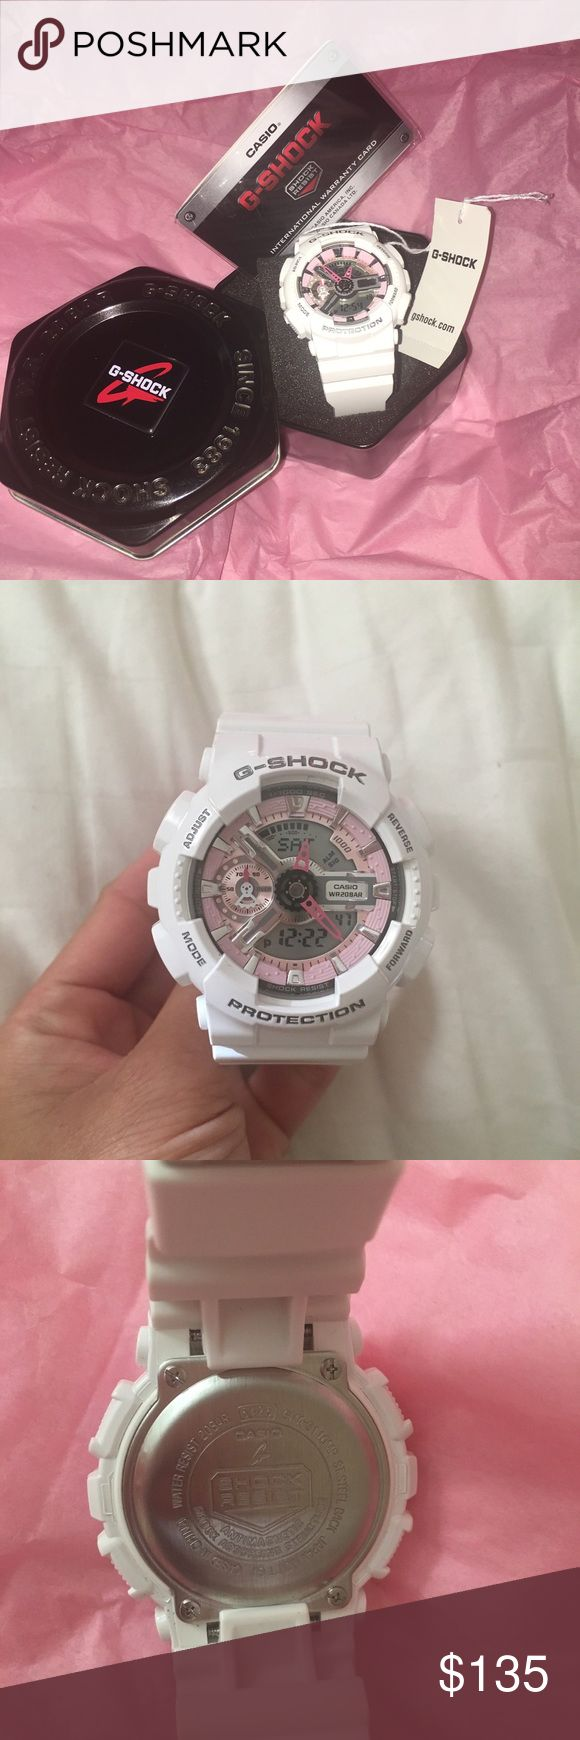 Brand new Casio G shock watch It is a brand new G-shock with tag. Never been worn. Water resistant with the white strap. G-shock Accessories Watches